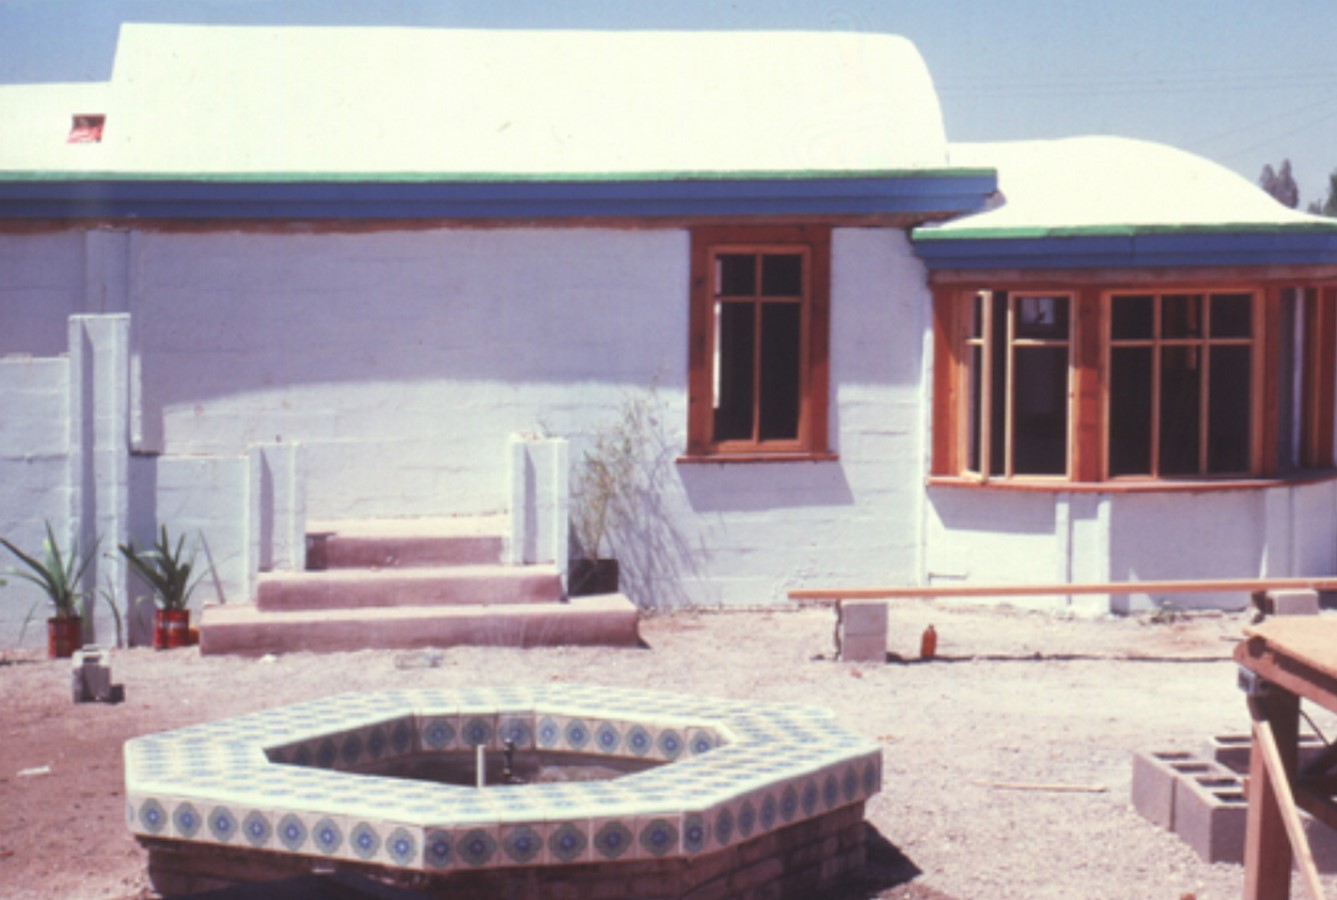 Low-Cost Housing in Mexicali, Mexico. - Sheet2